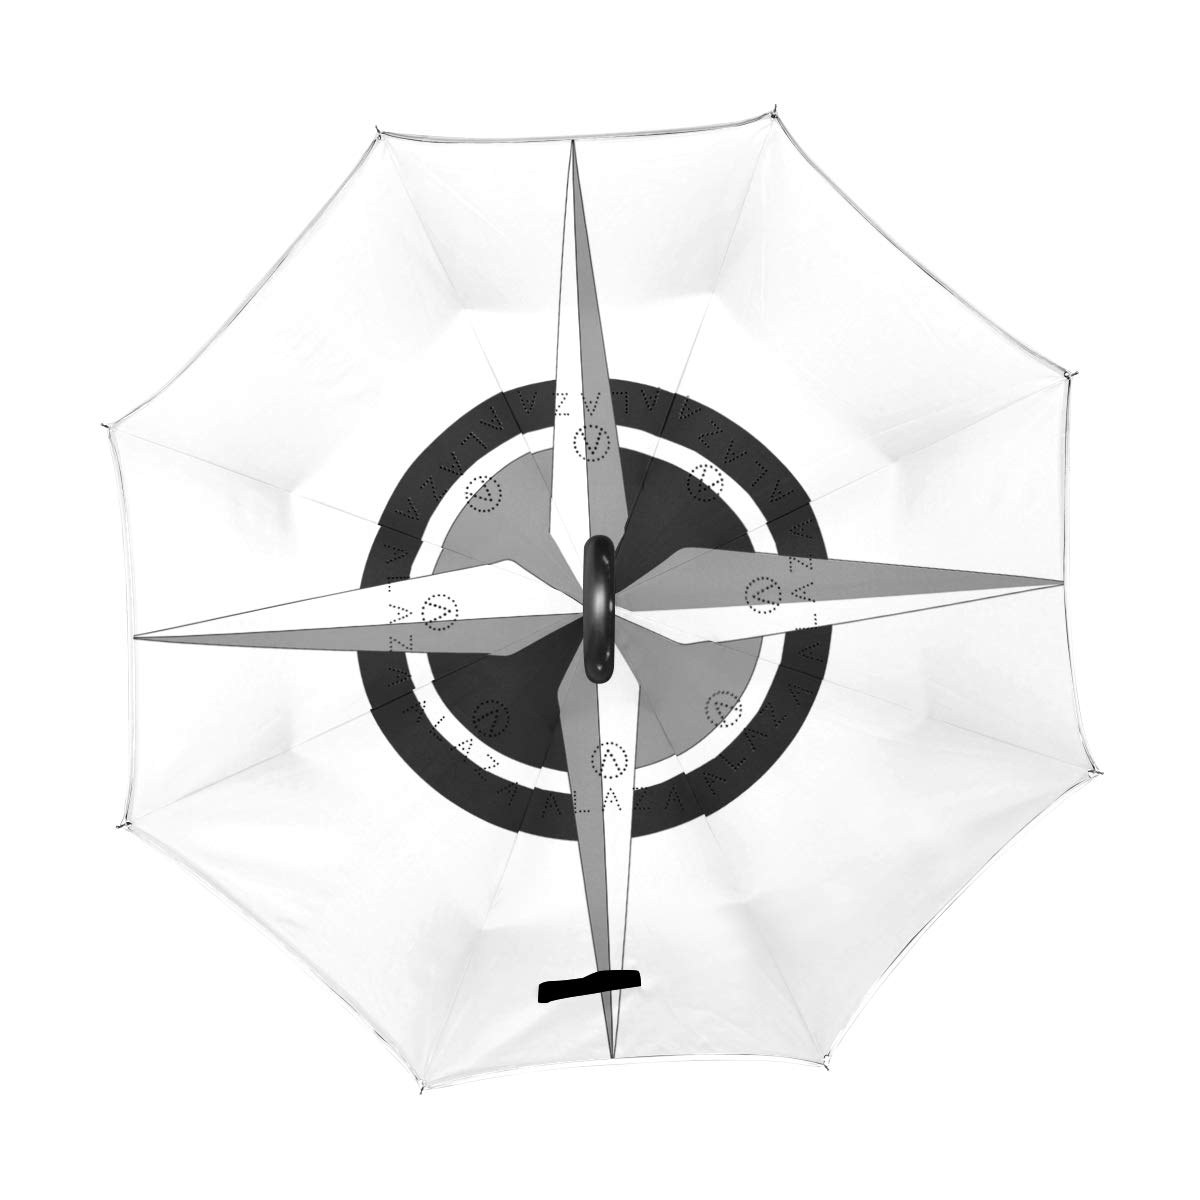 GYL YUSAN LWFB Umbrella//With Waterproof Cover//16 Ribs Windproof//Long-handled//Golf Umbrella//Simple Business Portable Stick Umbrella For Men And Women Bumbershoot